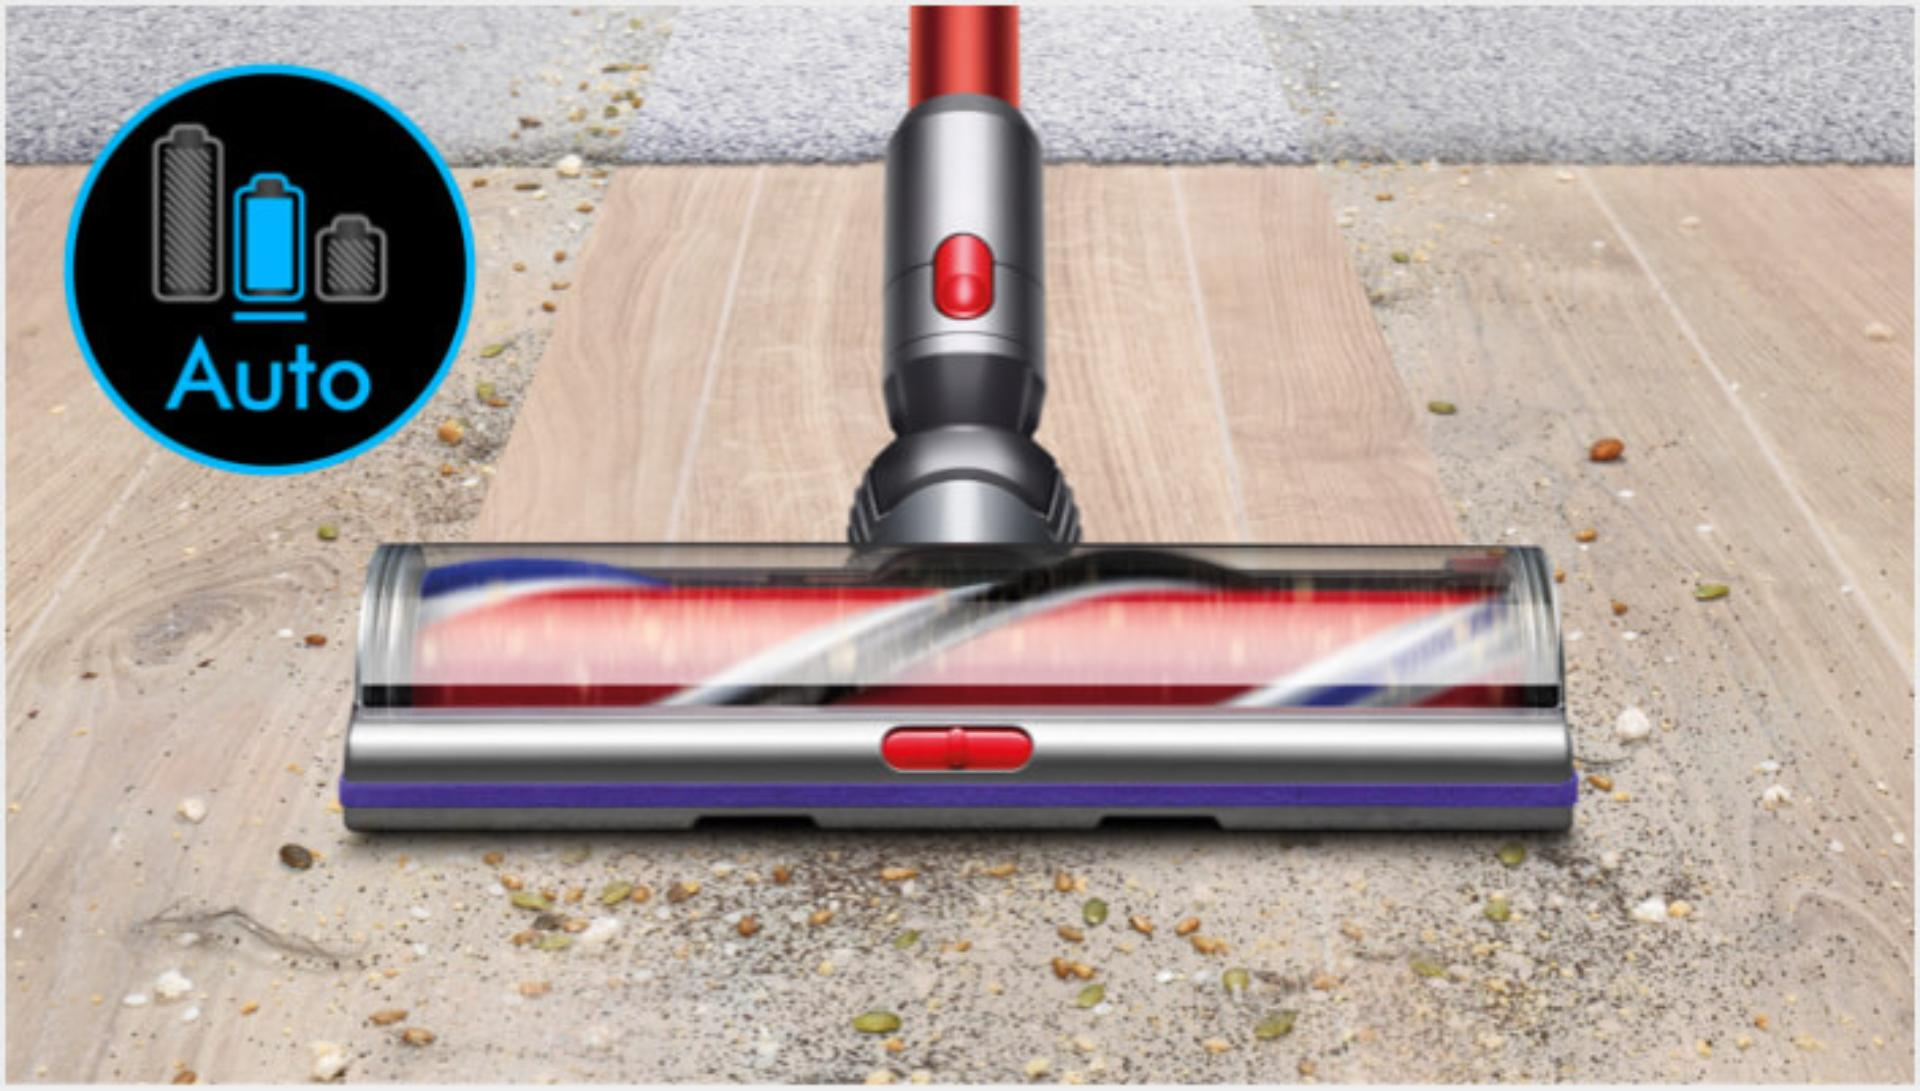 Dyson V11 vacuum being used on different floor types